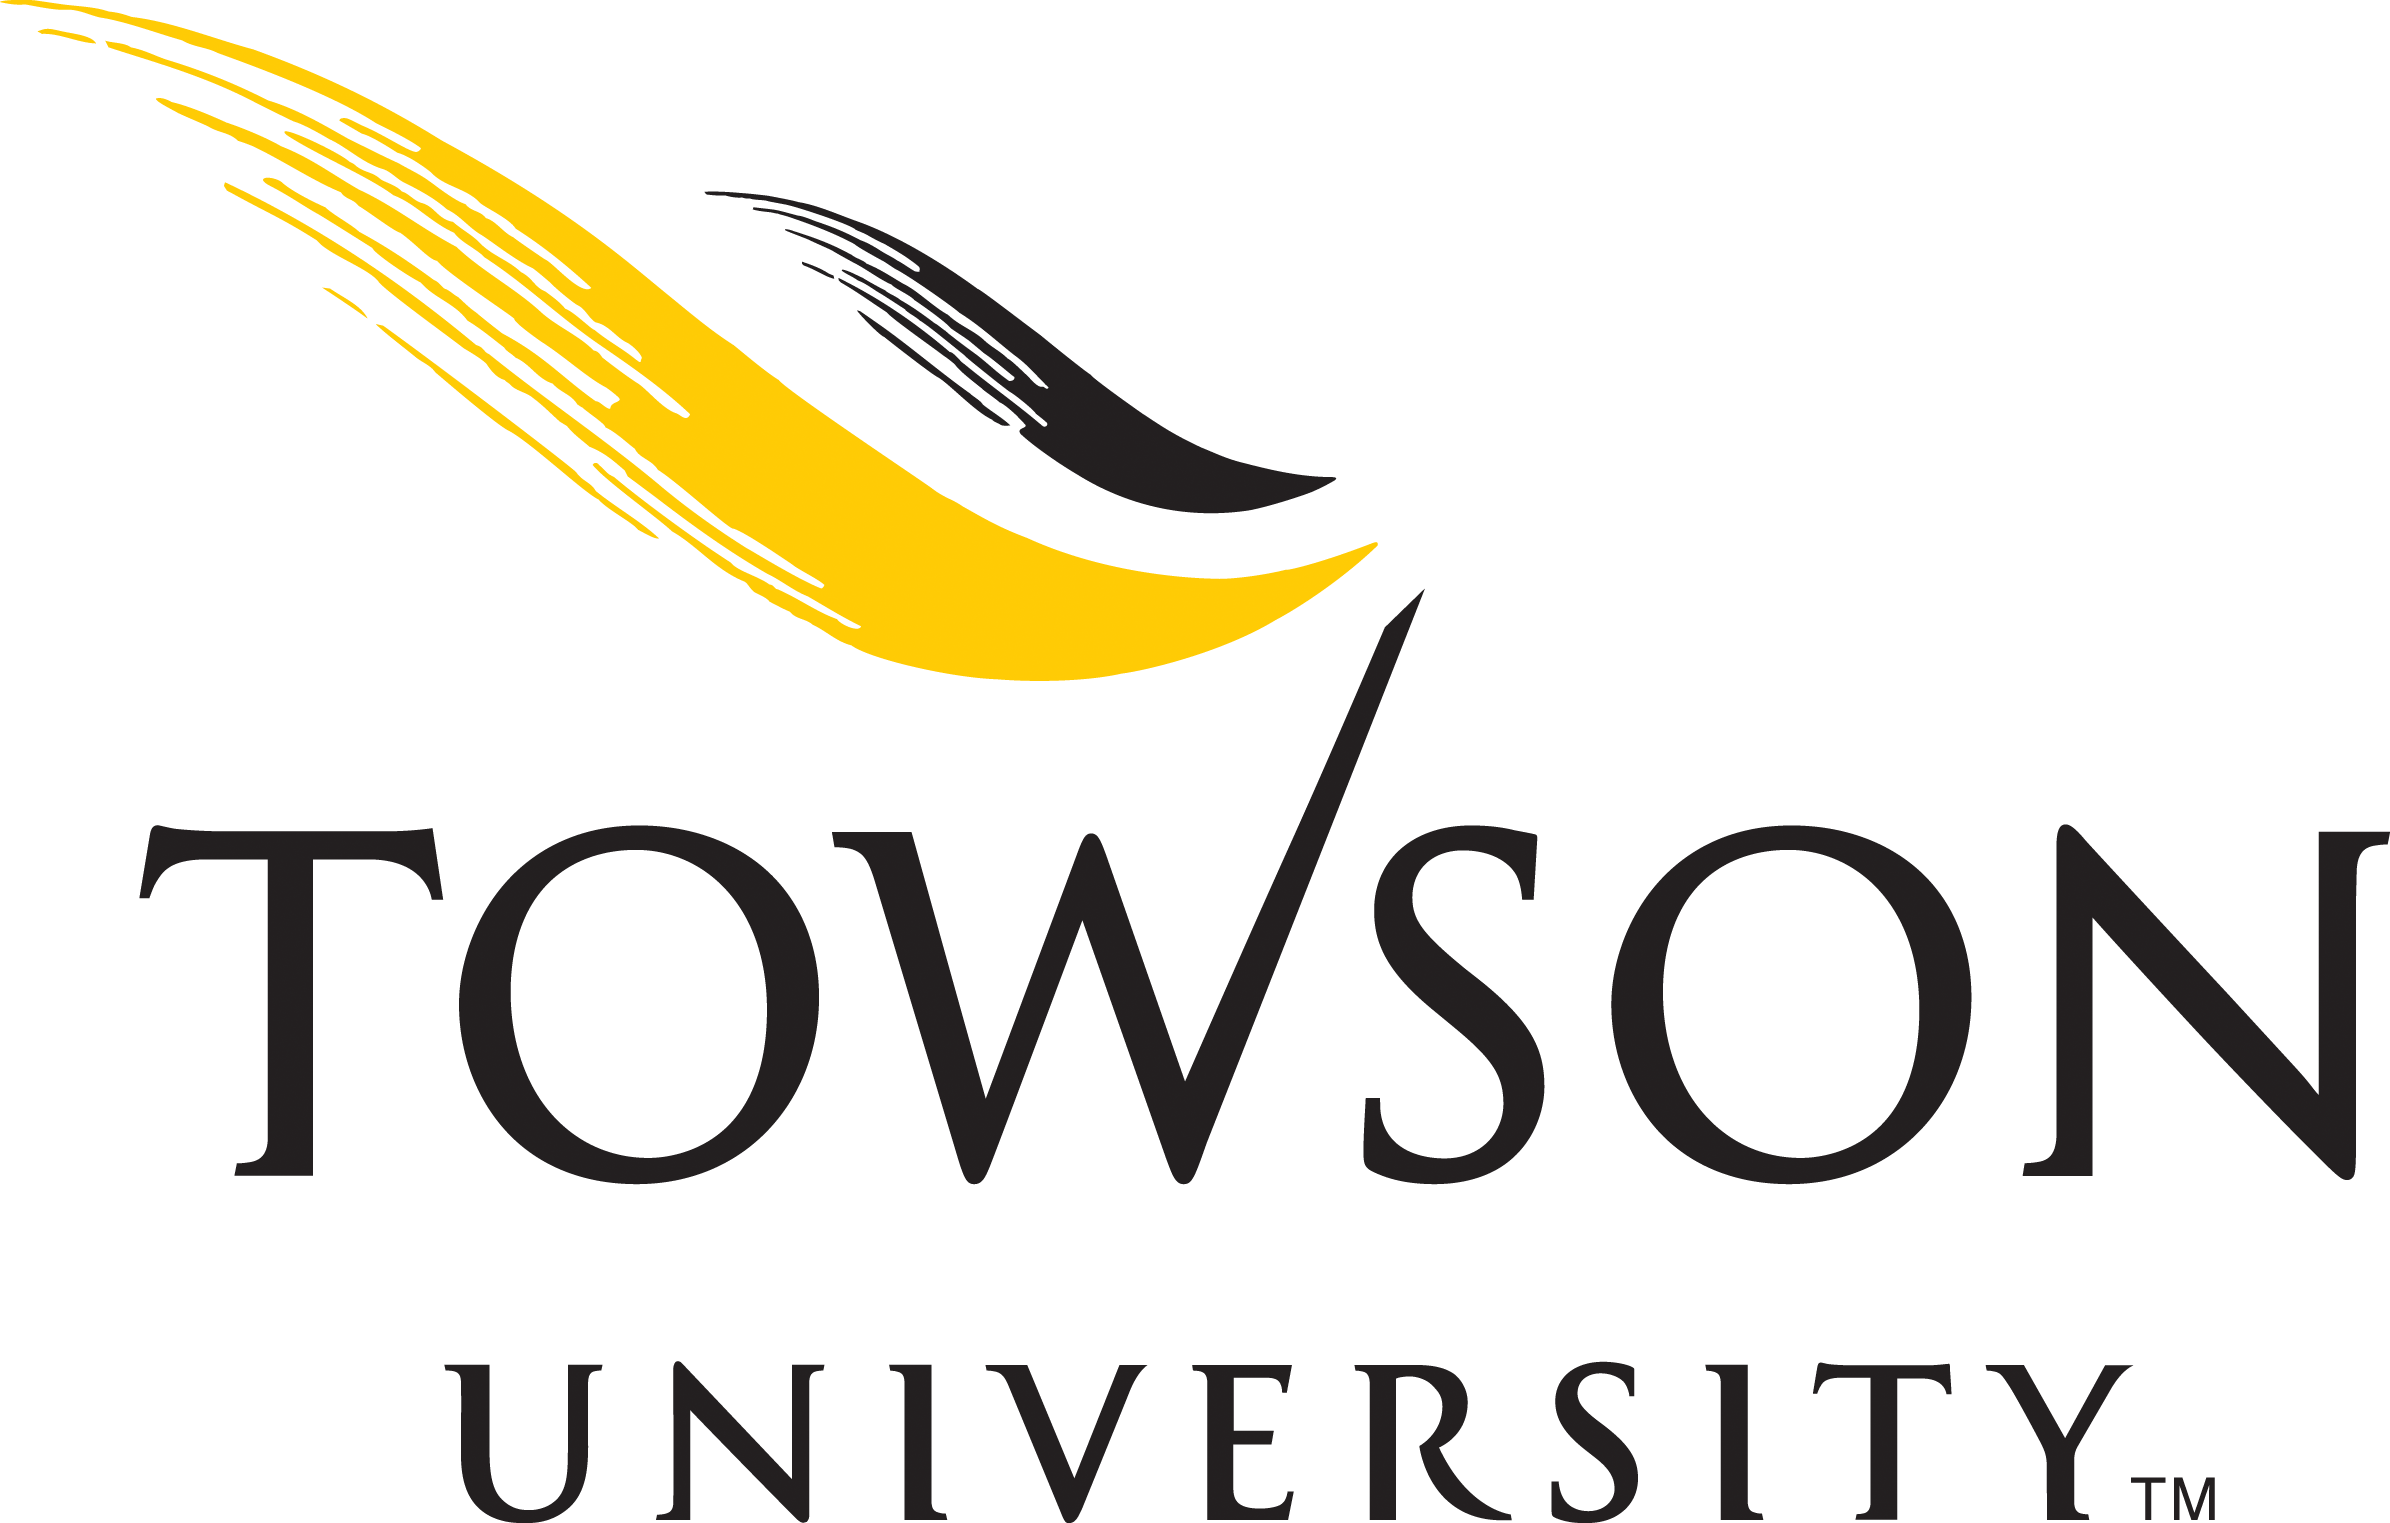 Towson University.png